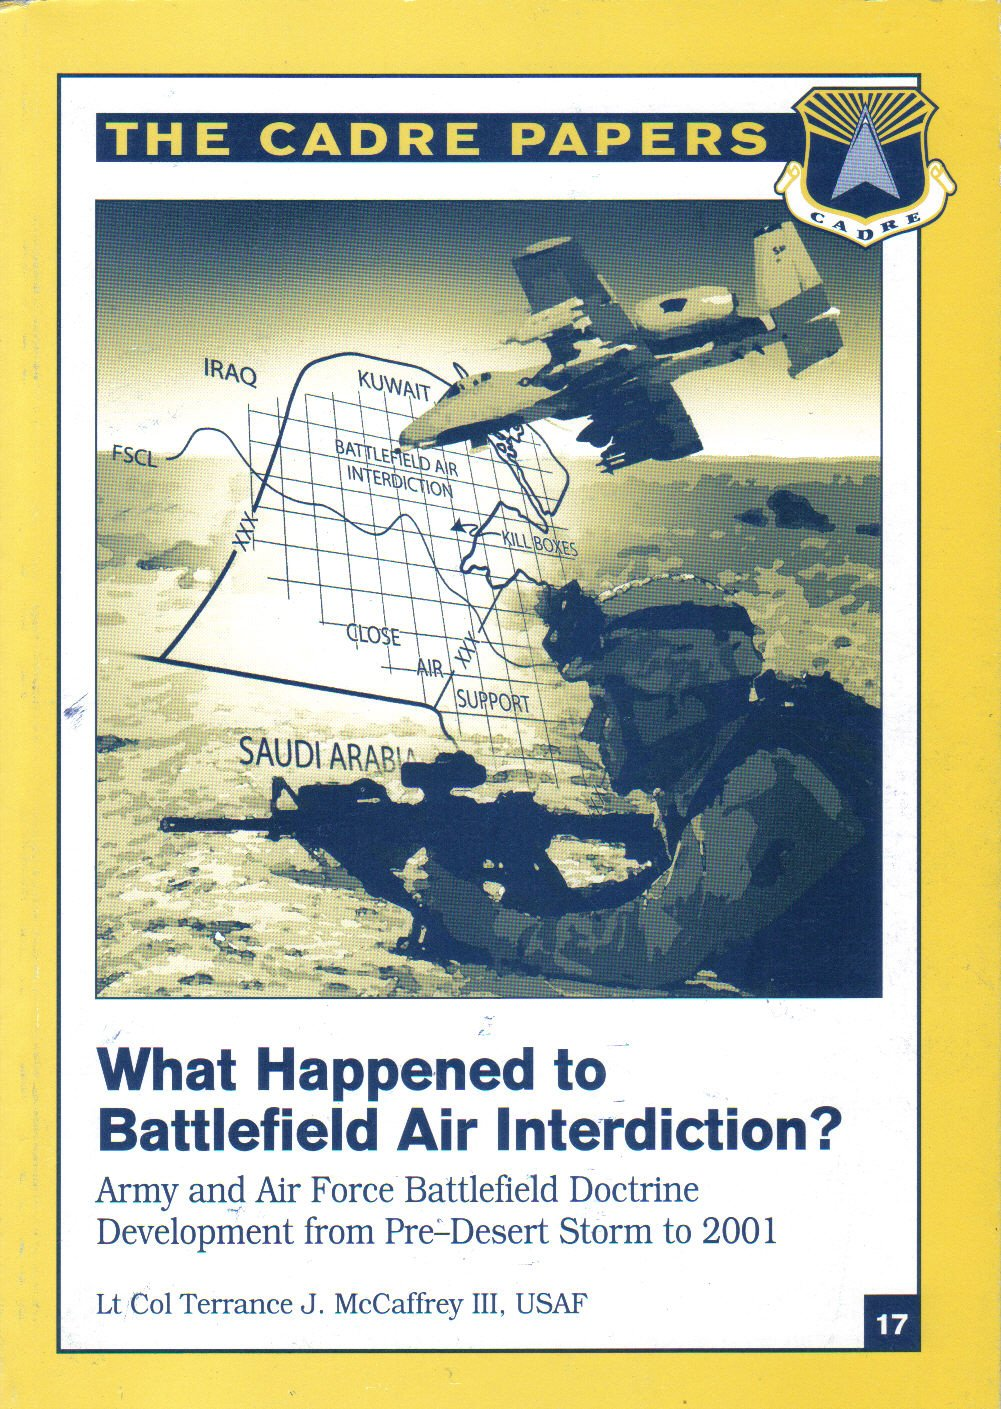 Download What Happened to Battlefield Air Interdiction? The Cadre Papers. Army and Air Force Battlefield Doctrine (The Cadre Papers No. 17) ebook